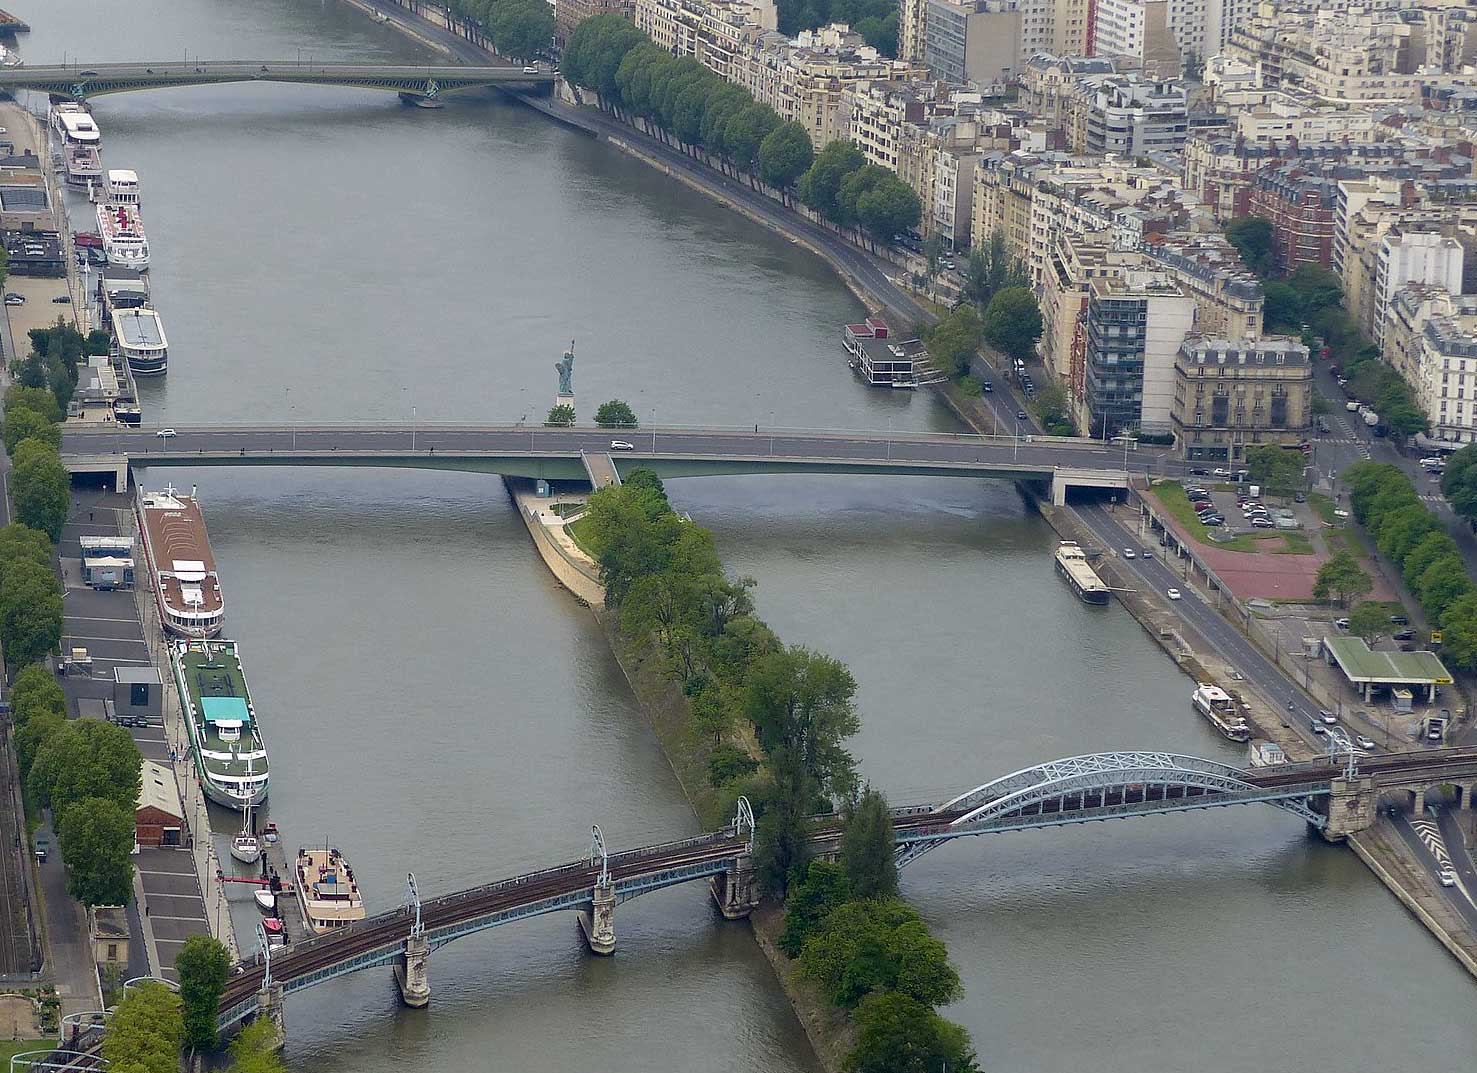 The Île aux Cygnes with the quarter-scale replica of The Statue of Liberty, seen from the Eiffel Tower in Paris.